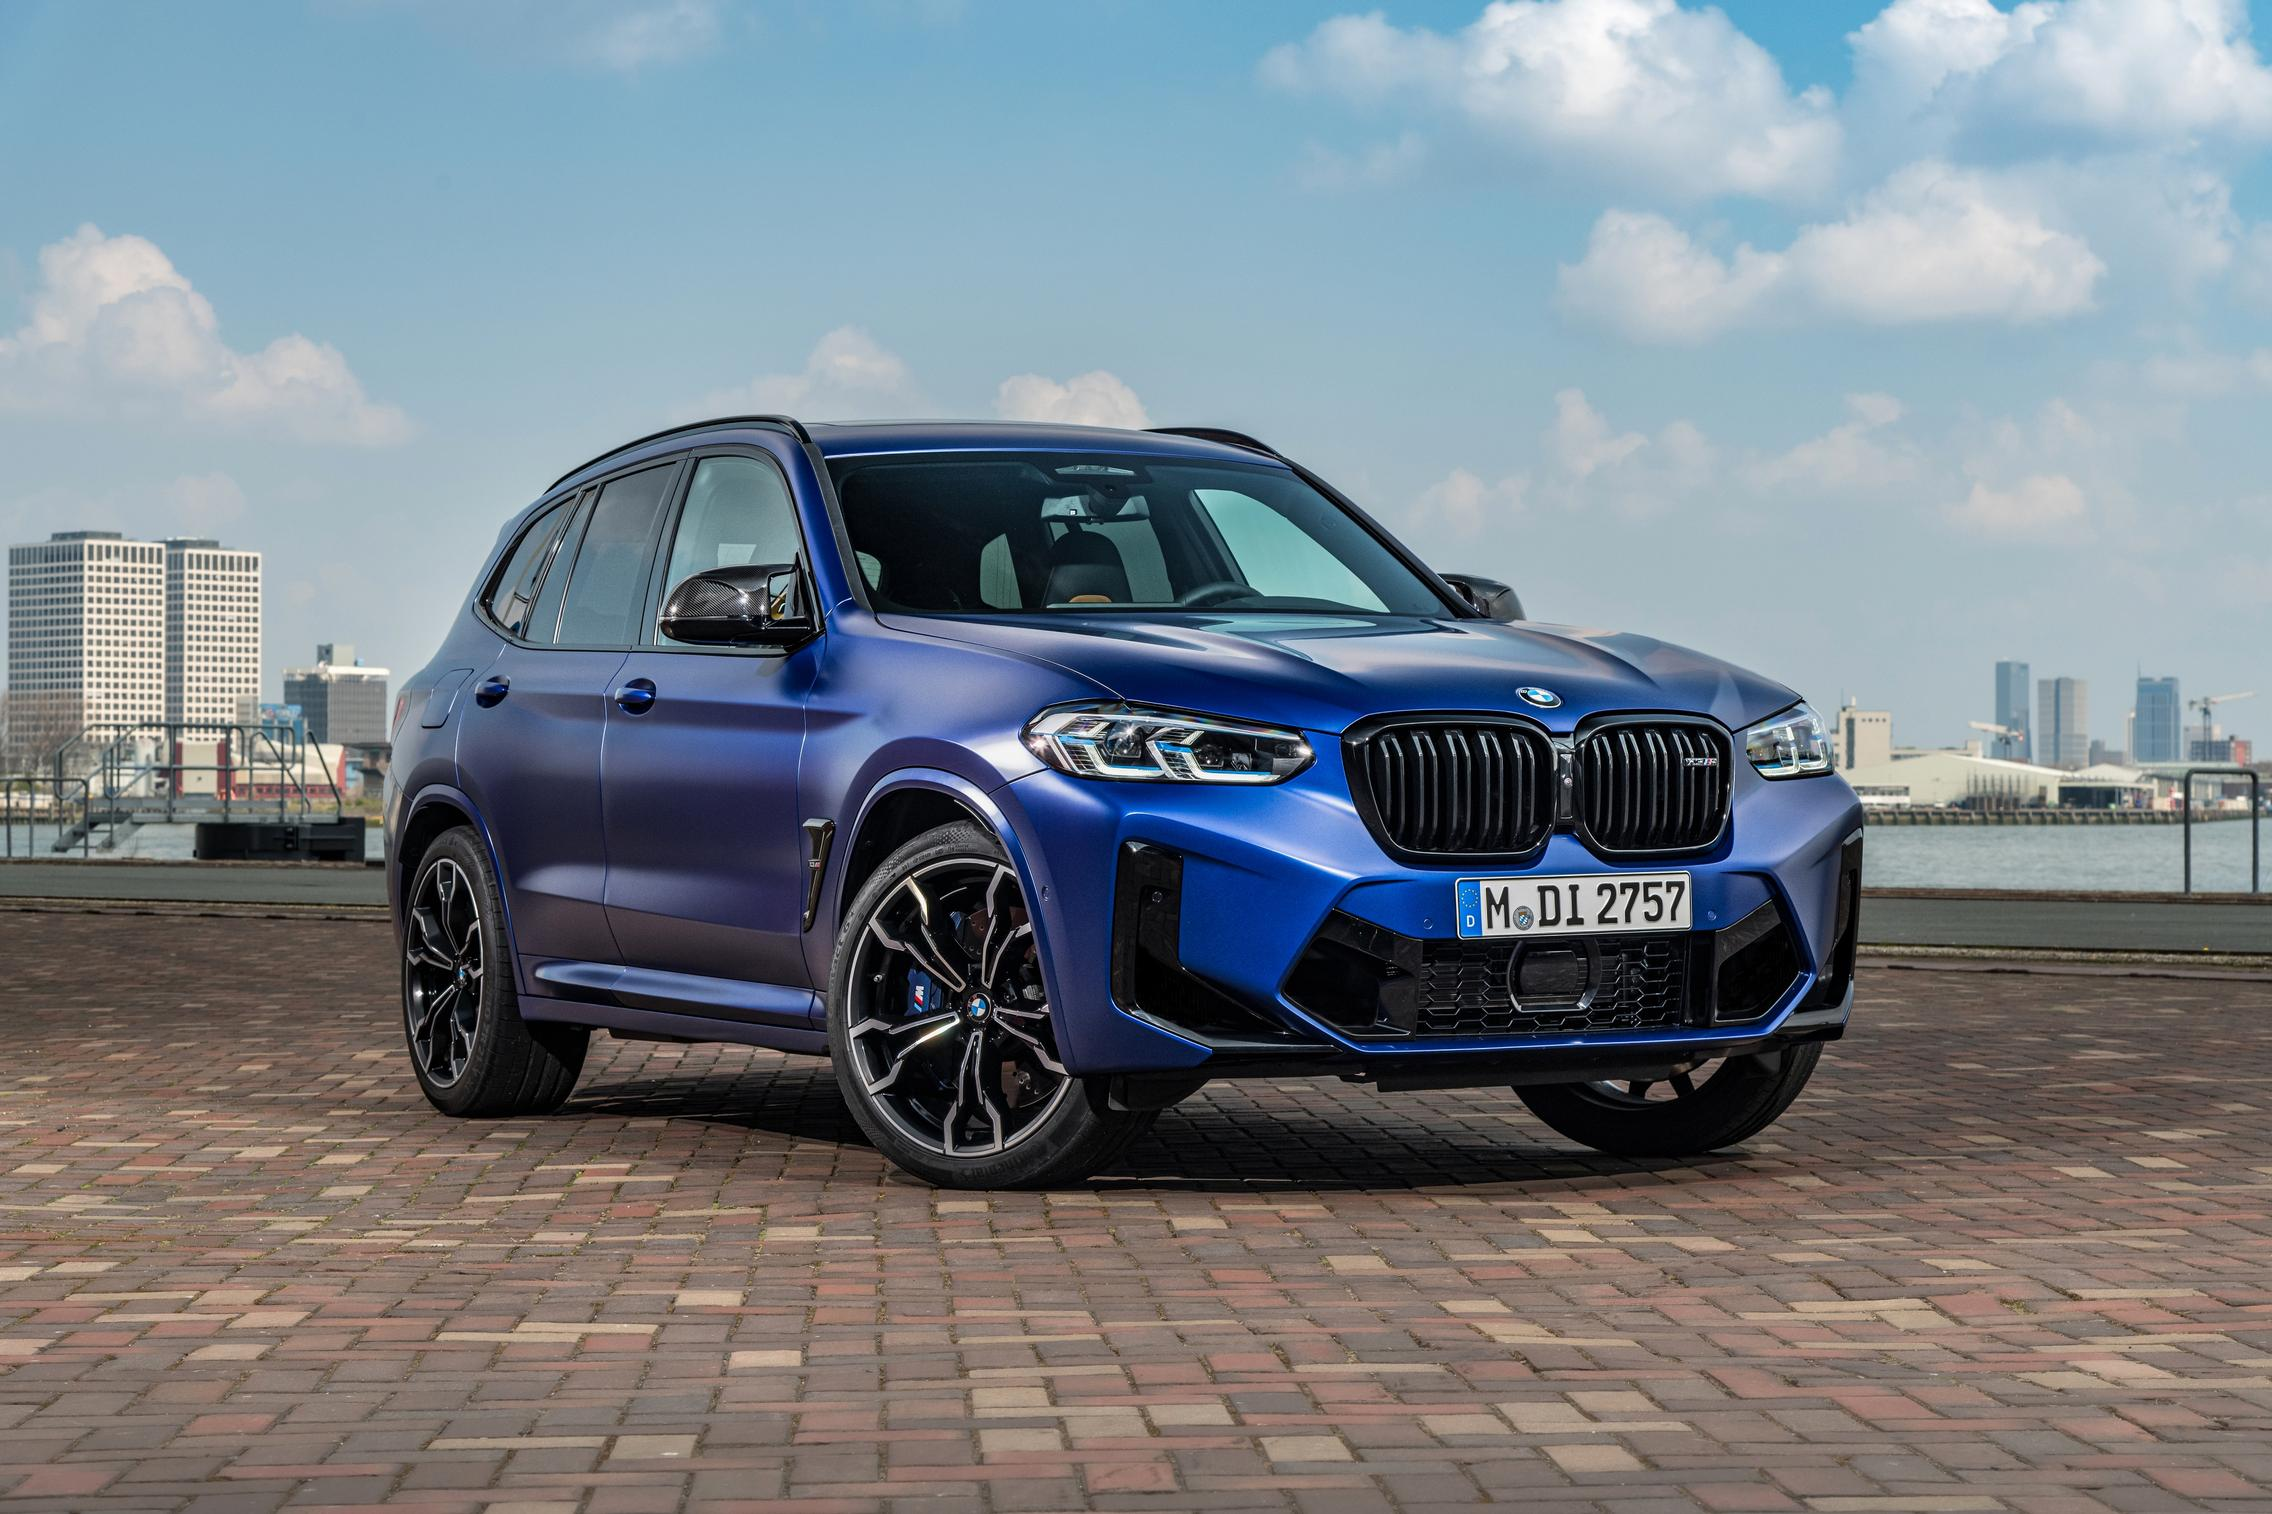 BMW X3 M Competition front 3rd quarter